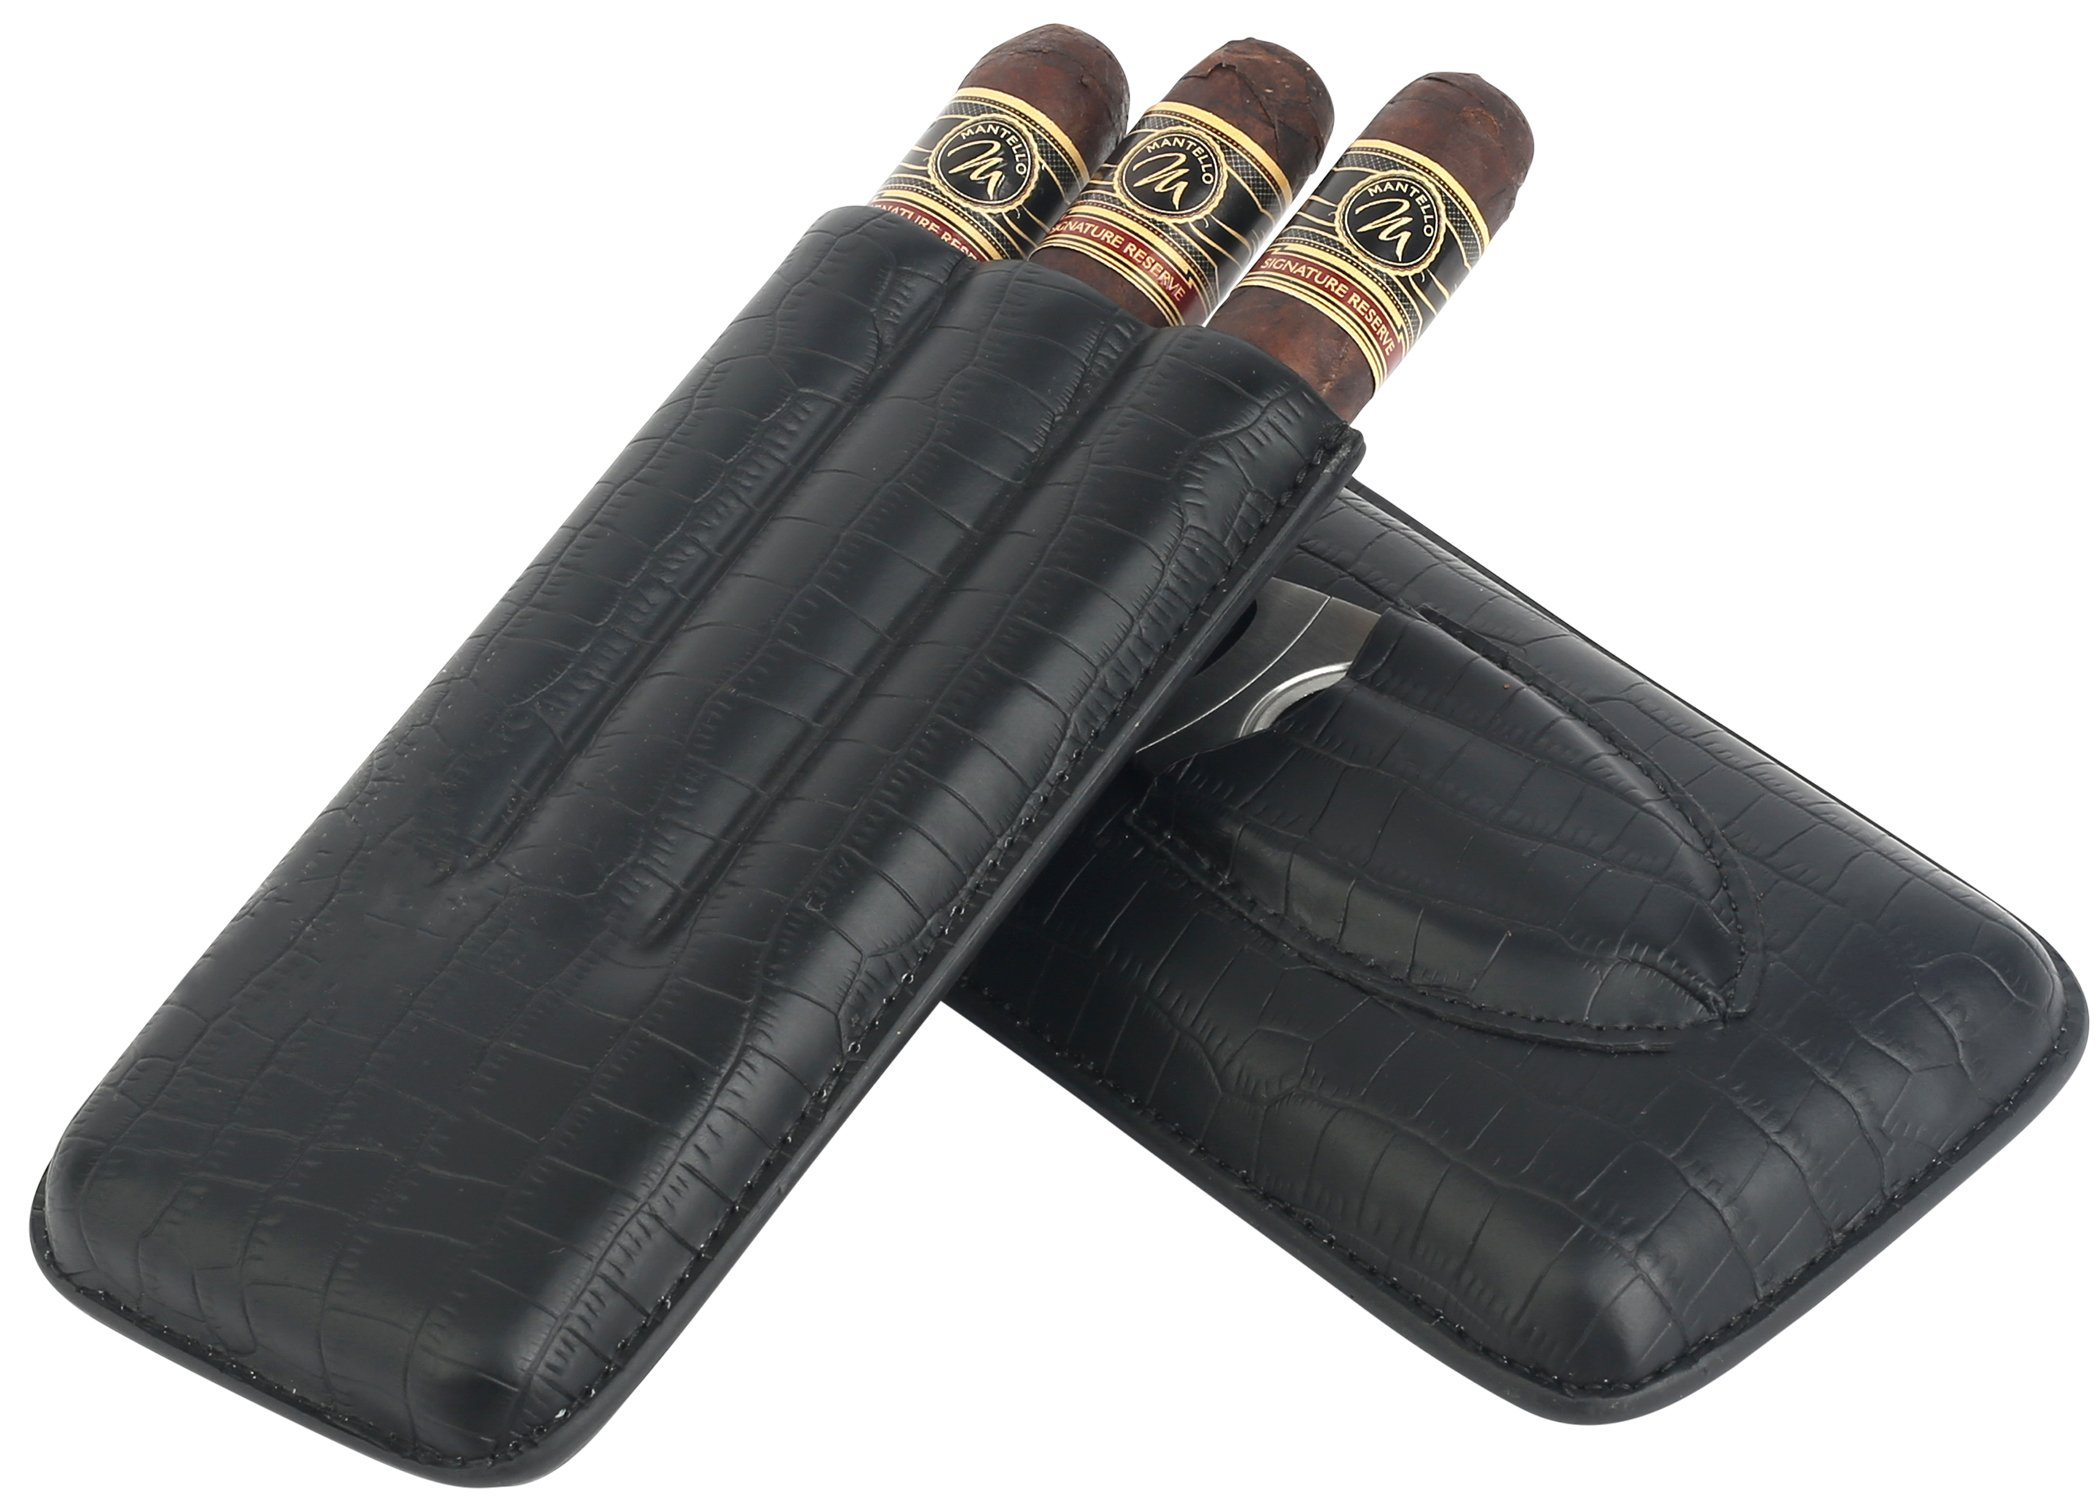 Mantello 3 Cigar Genuine Leather Cigar Case with Cutter